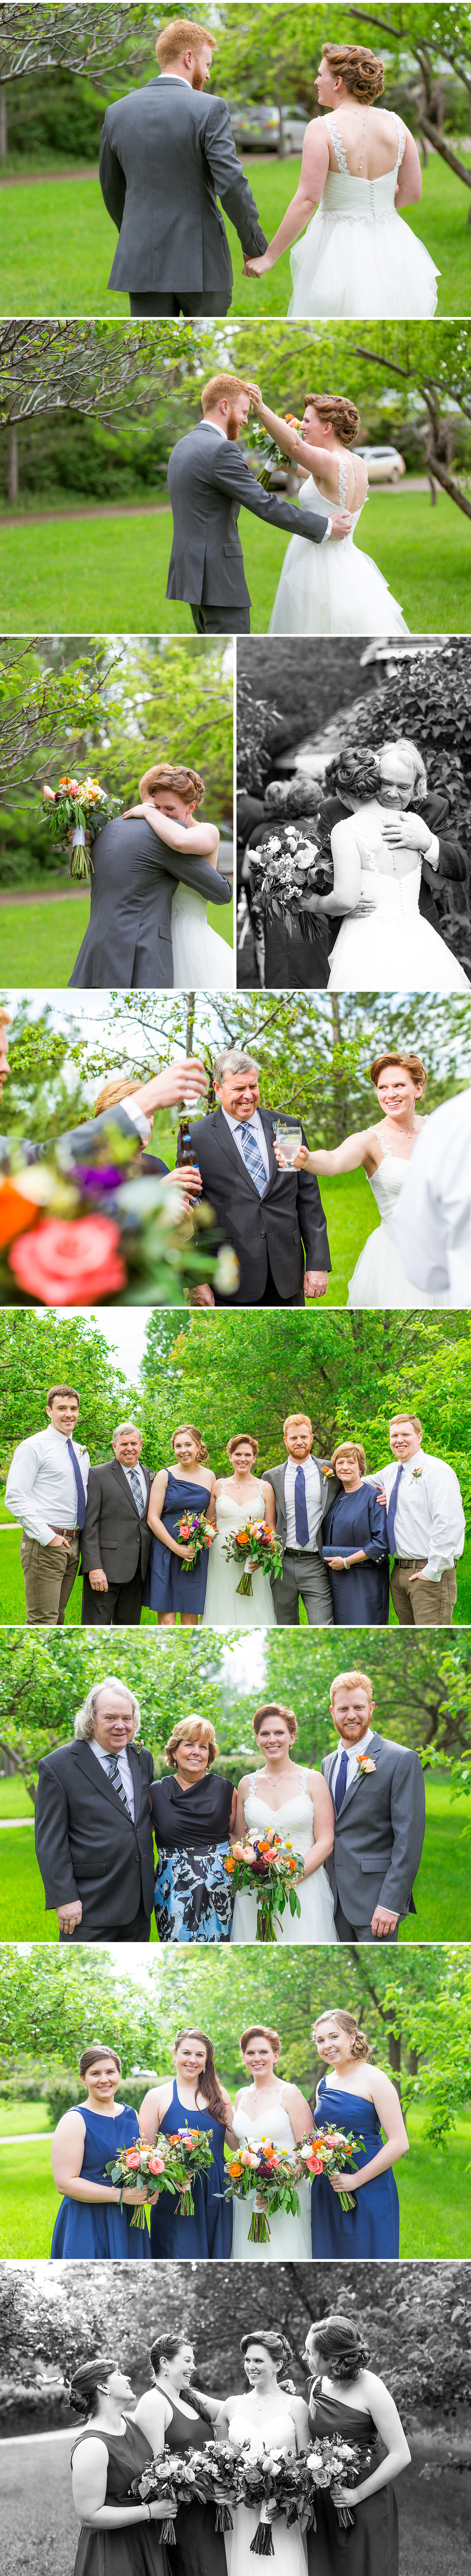 7 Longmont Wedding Photos.jpg